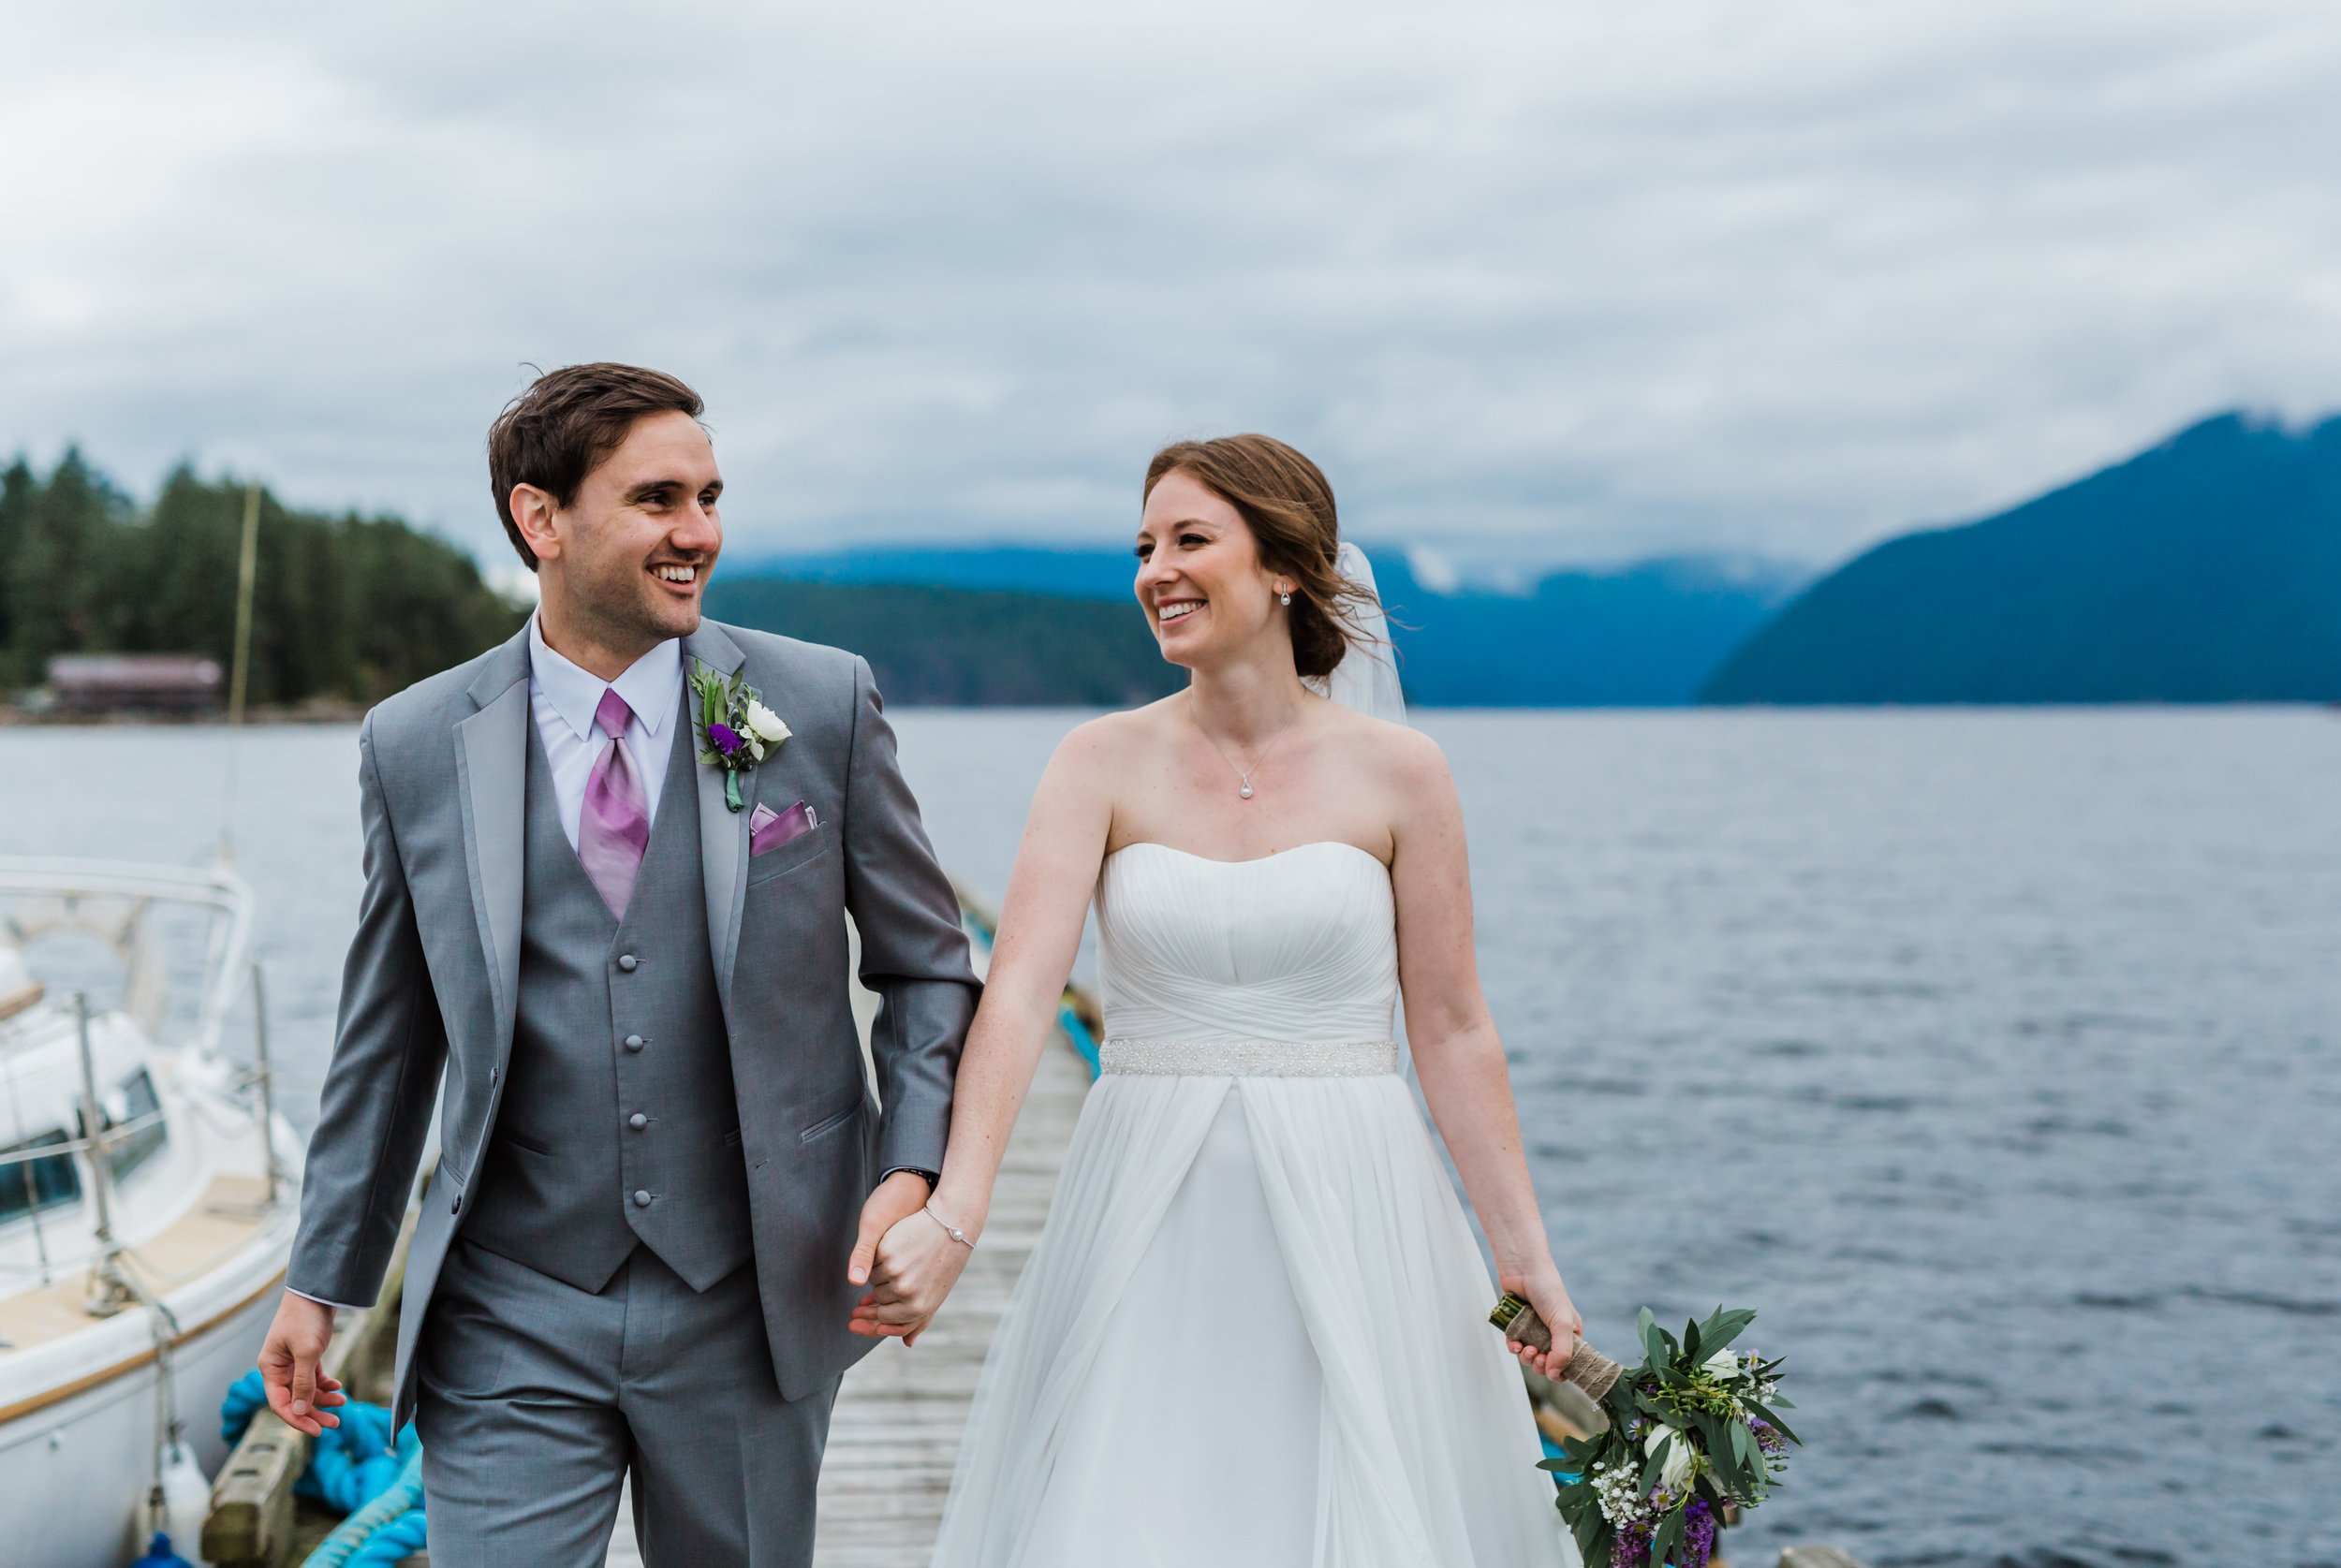 West Coast Wilderness Lodge Wedding Photos - Vancouver Wedding Photographer & Videographer - Sunshine Coast Wedding Photos - Sunshine Coast Wedding Photographer - Jennifer Picard Photography - IMG_6685.jpg